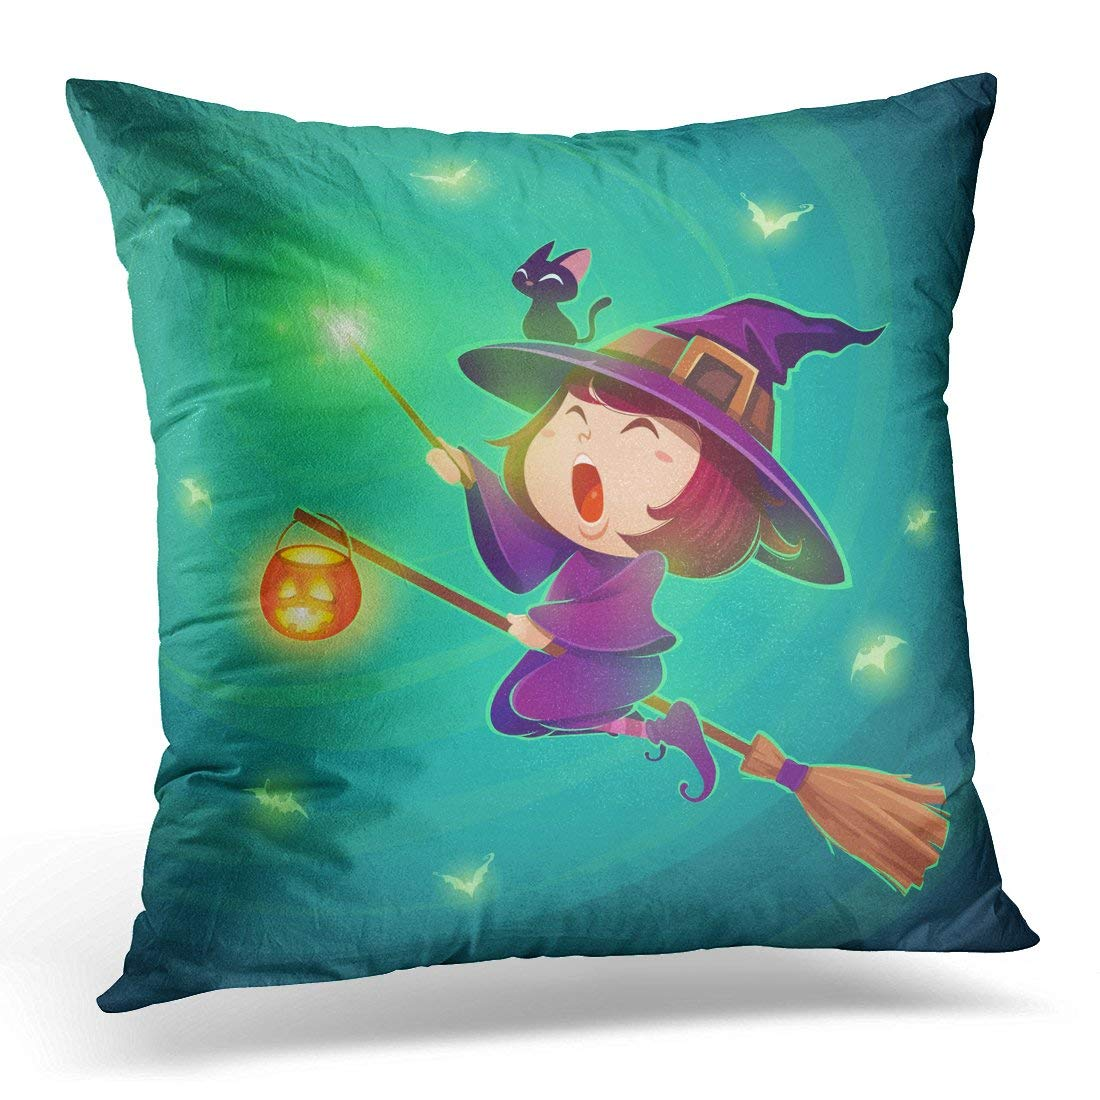 USART Black Halloween Flying Little Witch Girl Kid in Costume Holds Magic Wand Retro Vintage Turquoise Cute Pillow Case Pillow Cover 20x20 inch